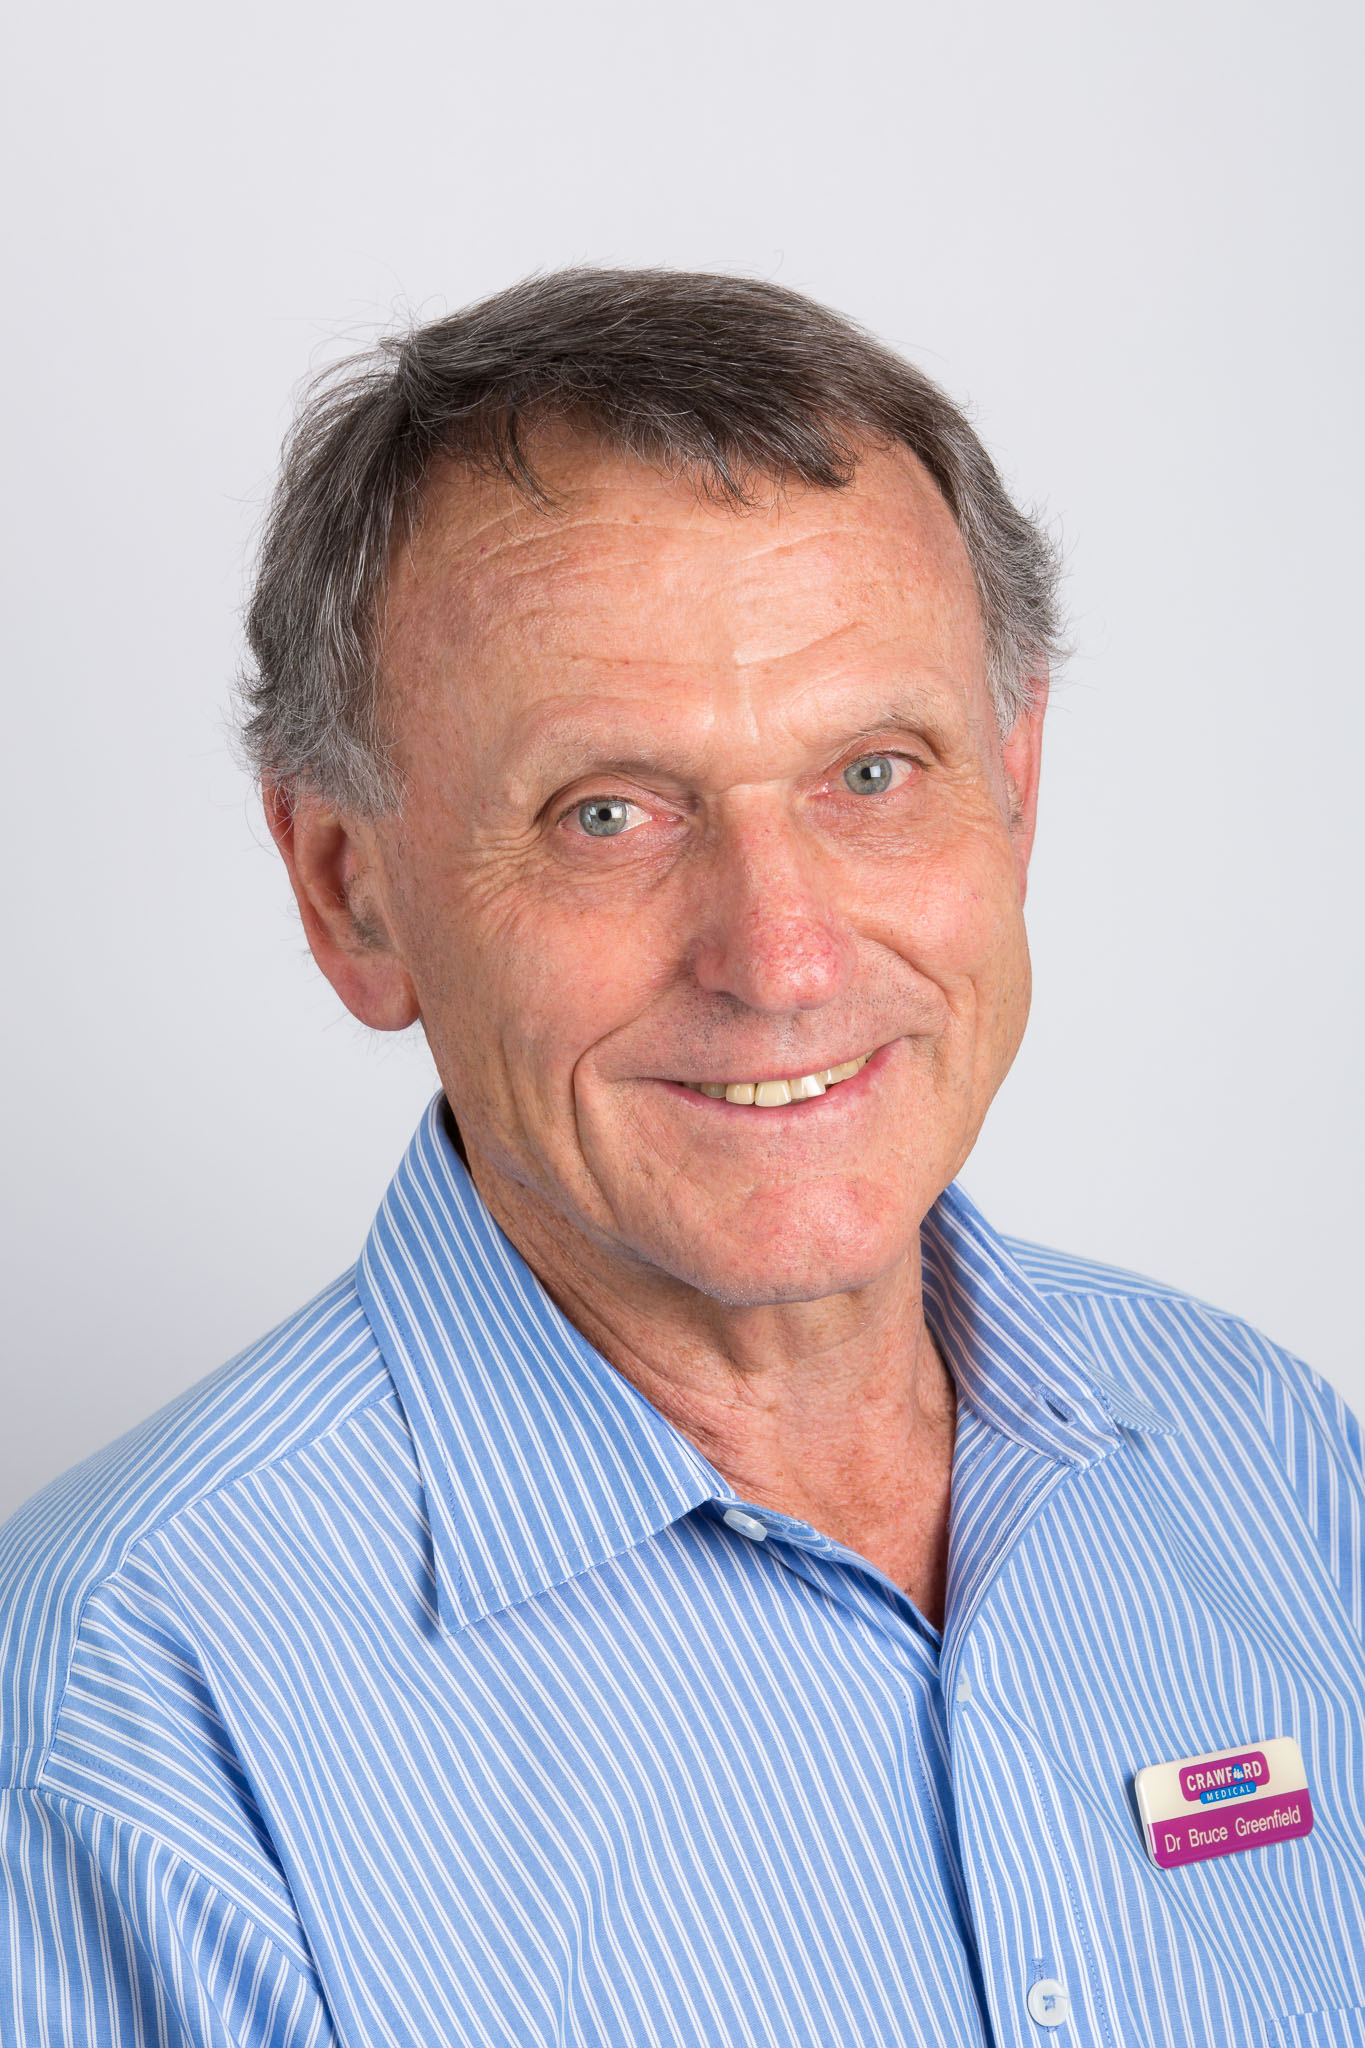 Dr Greenfield founded Crawford Medical located in Howick, Auckland in 1972 and is responsible for implementing Clinical Governance with the practice.